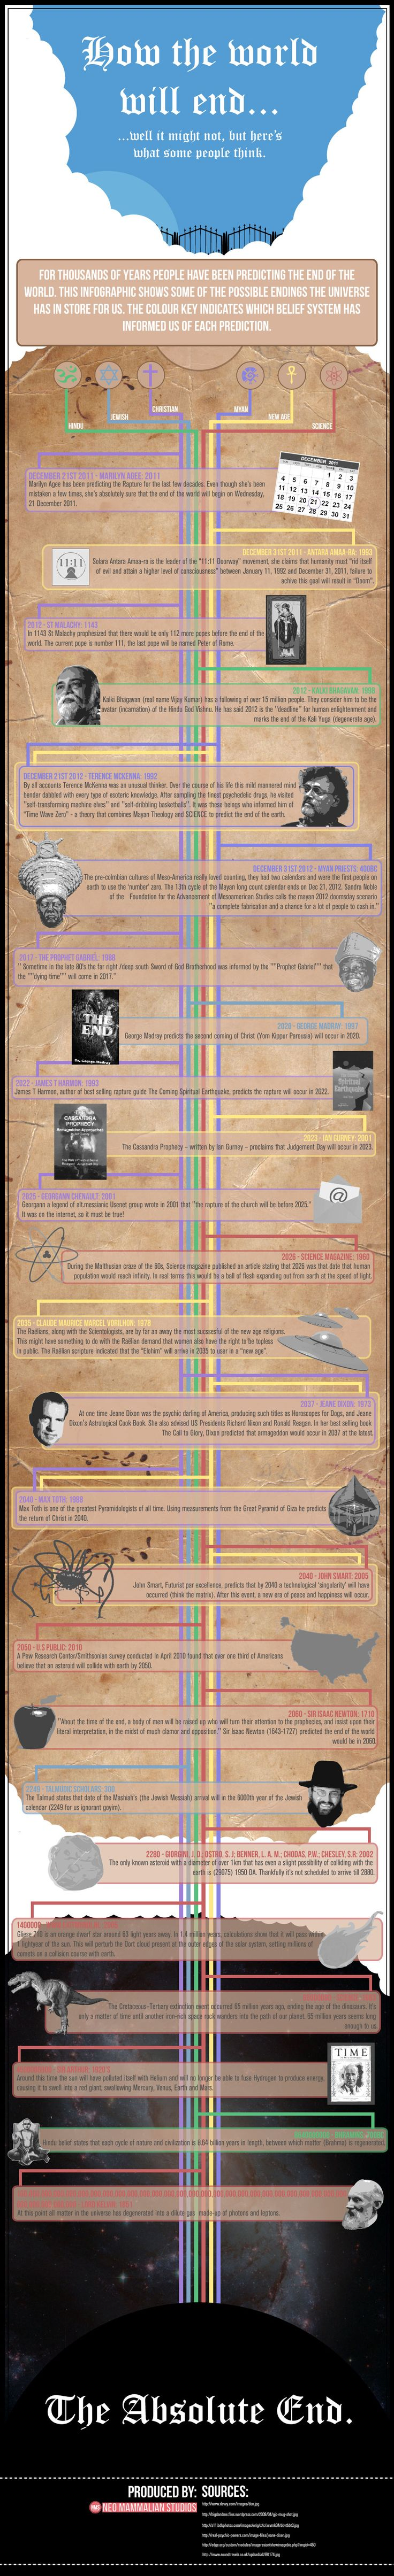 People have been predicting the end of the world for thousands of years. This infographic provides some of the possible of endings that universe has i